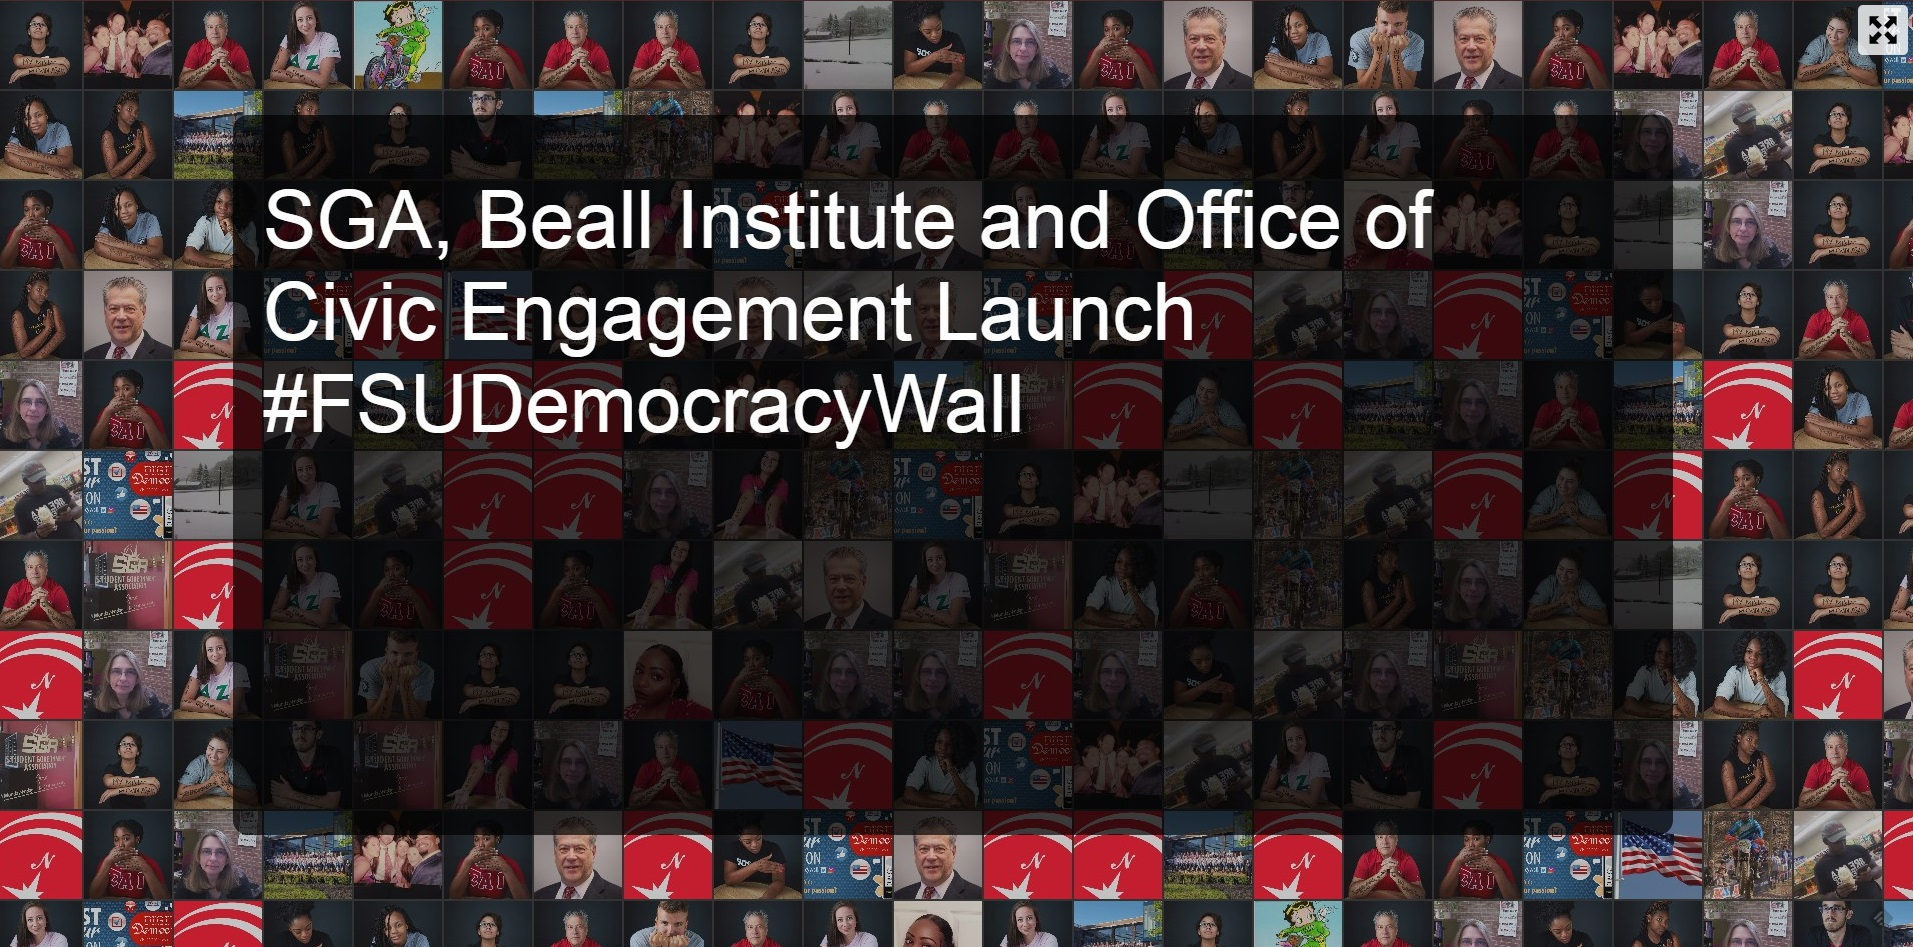 SGA, Beall Institute & Ofc of Civic Engagement